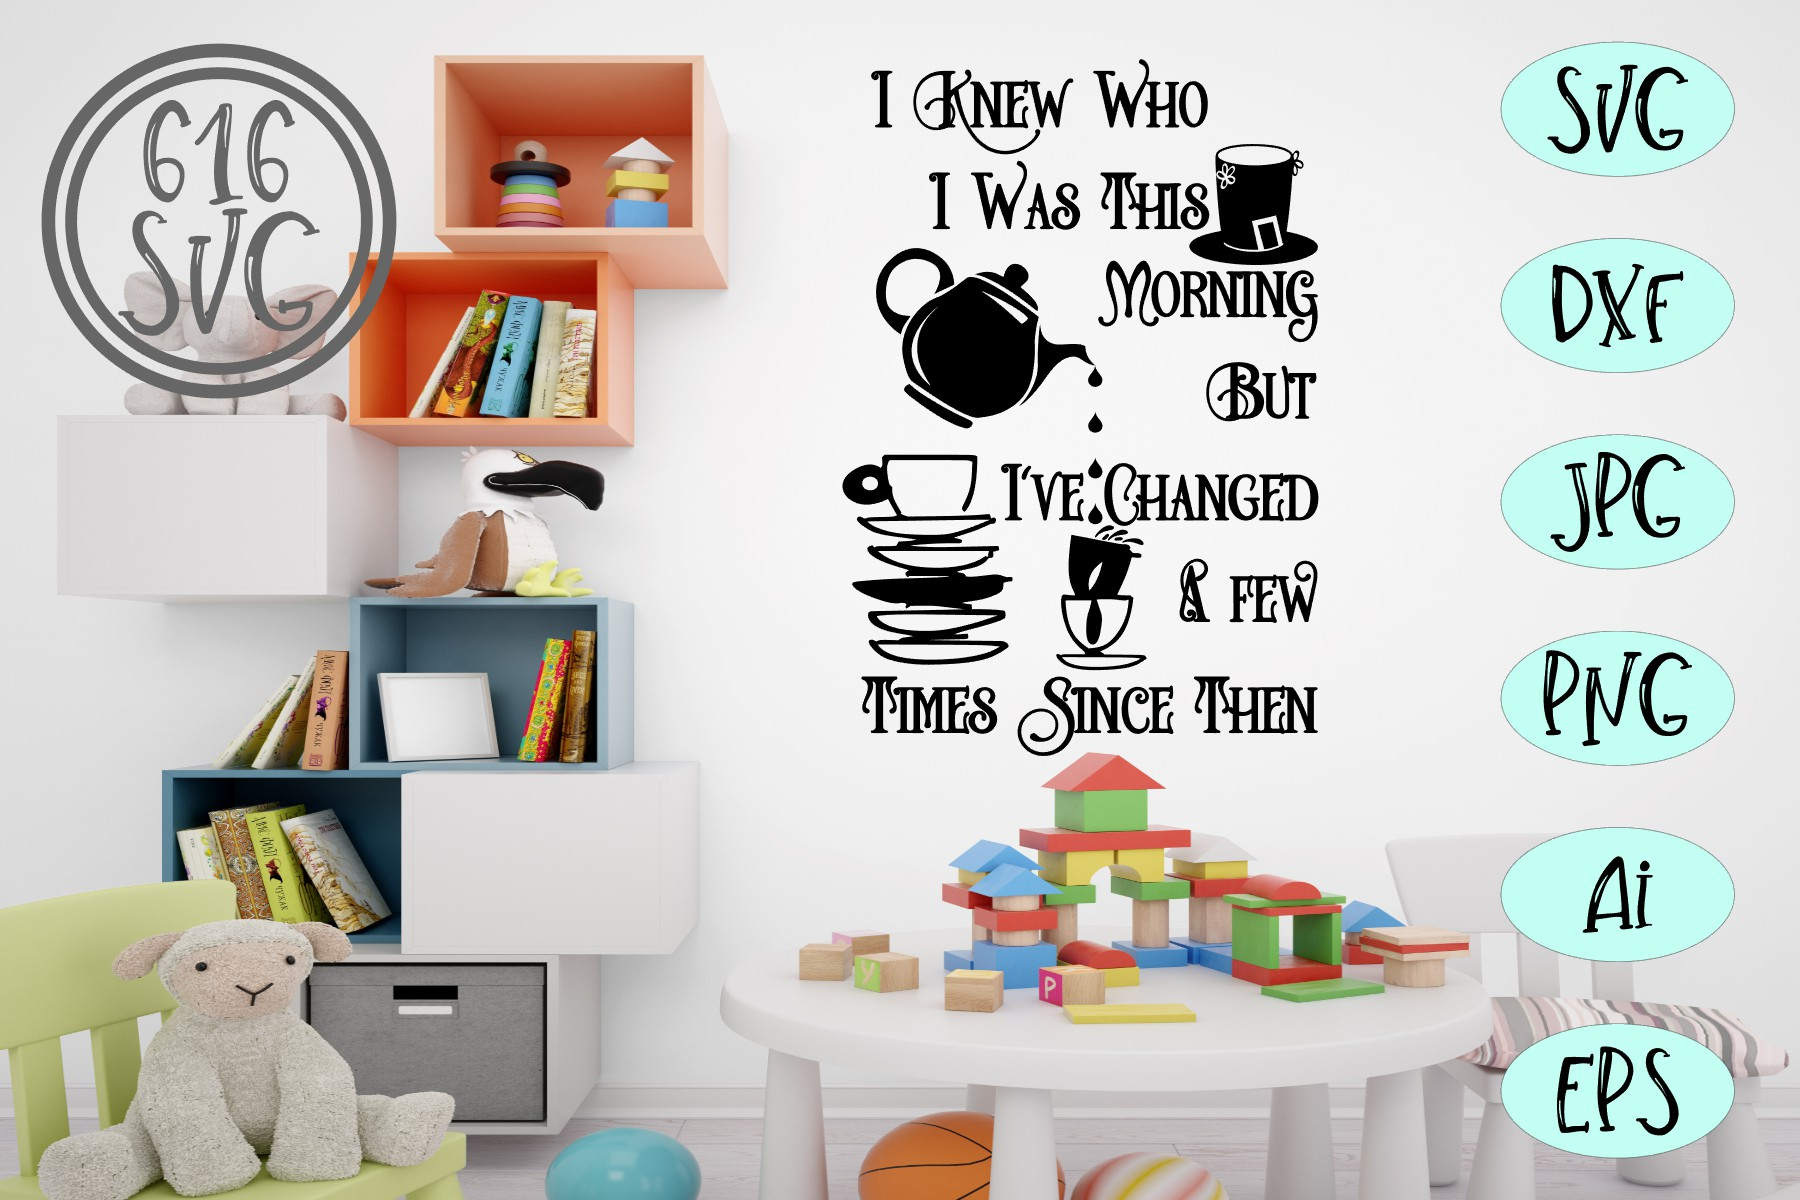 Childrens Library Bundle SVG, DXF, Ai, PNG example image 13